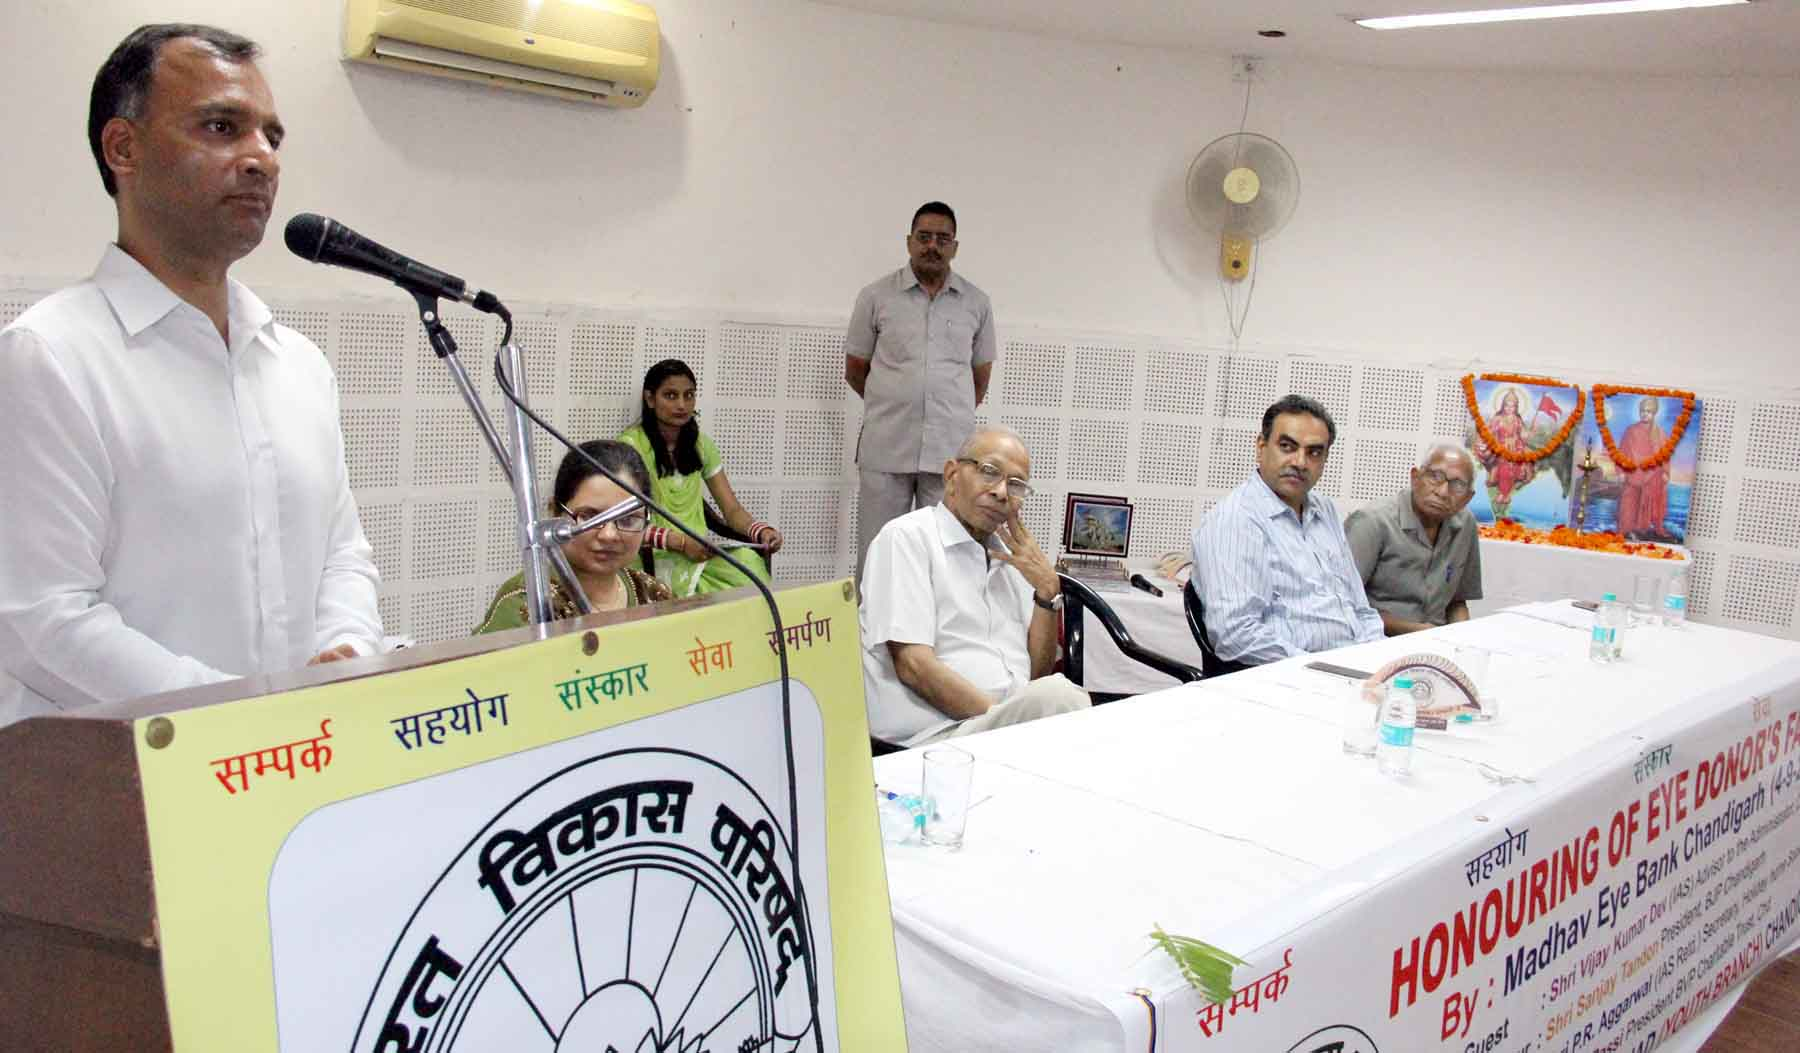 The Adviser to the Administrator, UT, Chandigarh, Mr. Vijay Dev addressing at a Function of honouring of Eye Donor s families at Indira Holiday Home, Sector-24, Chandigarh on Friday, September 04, 2015.